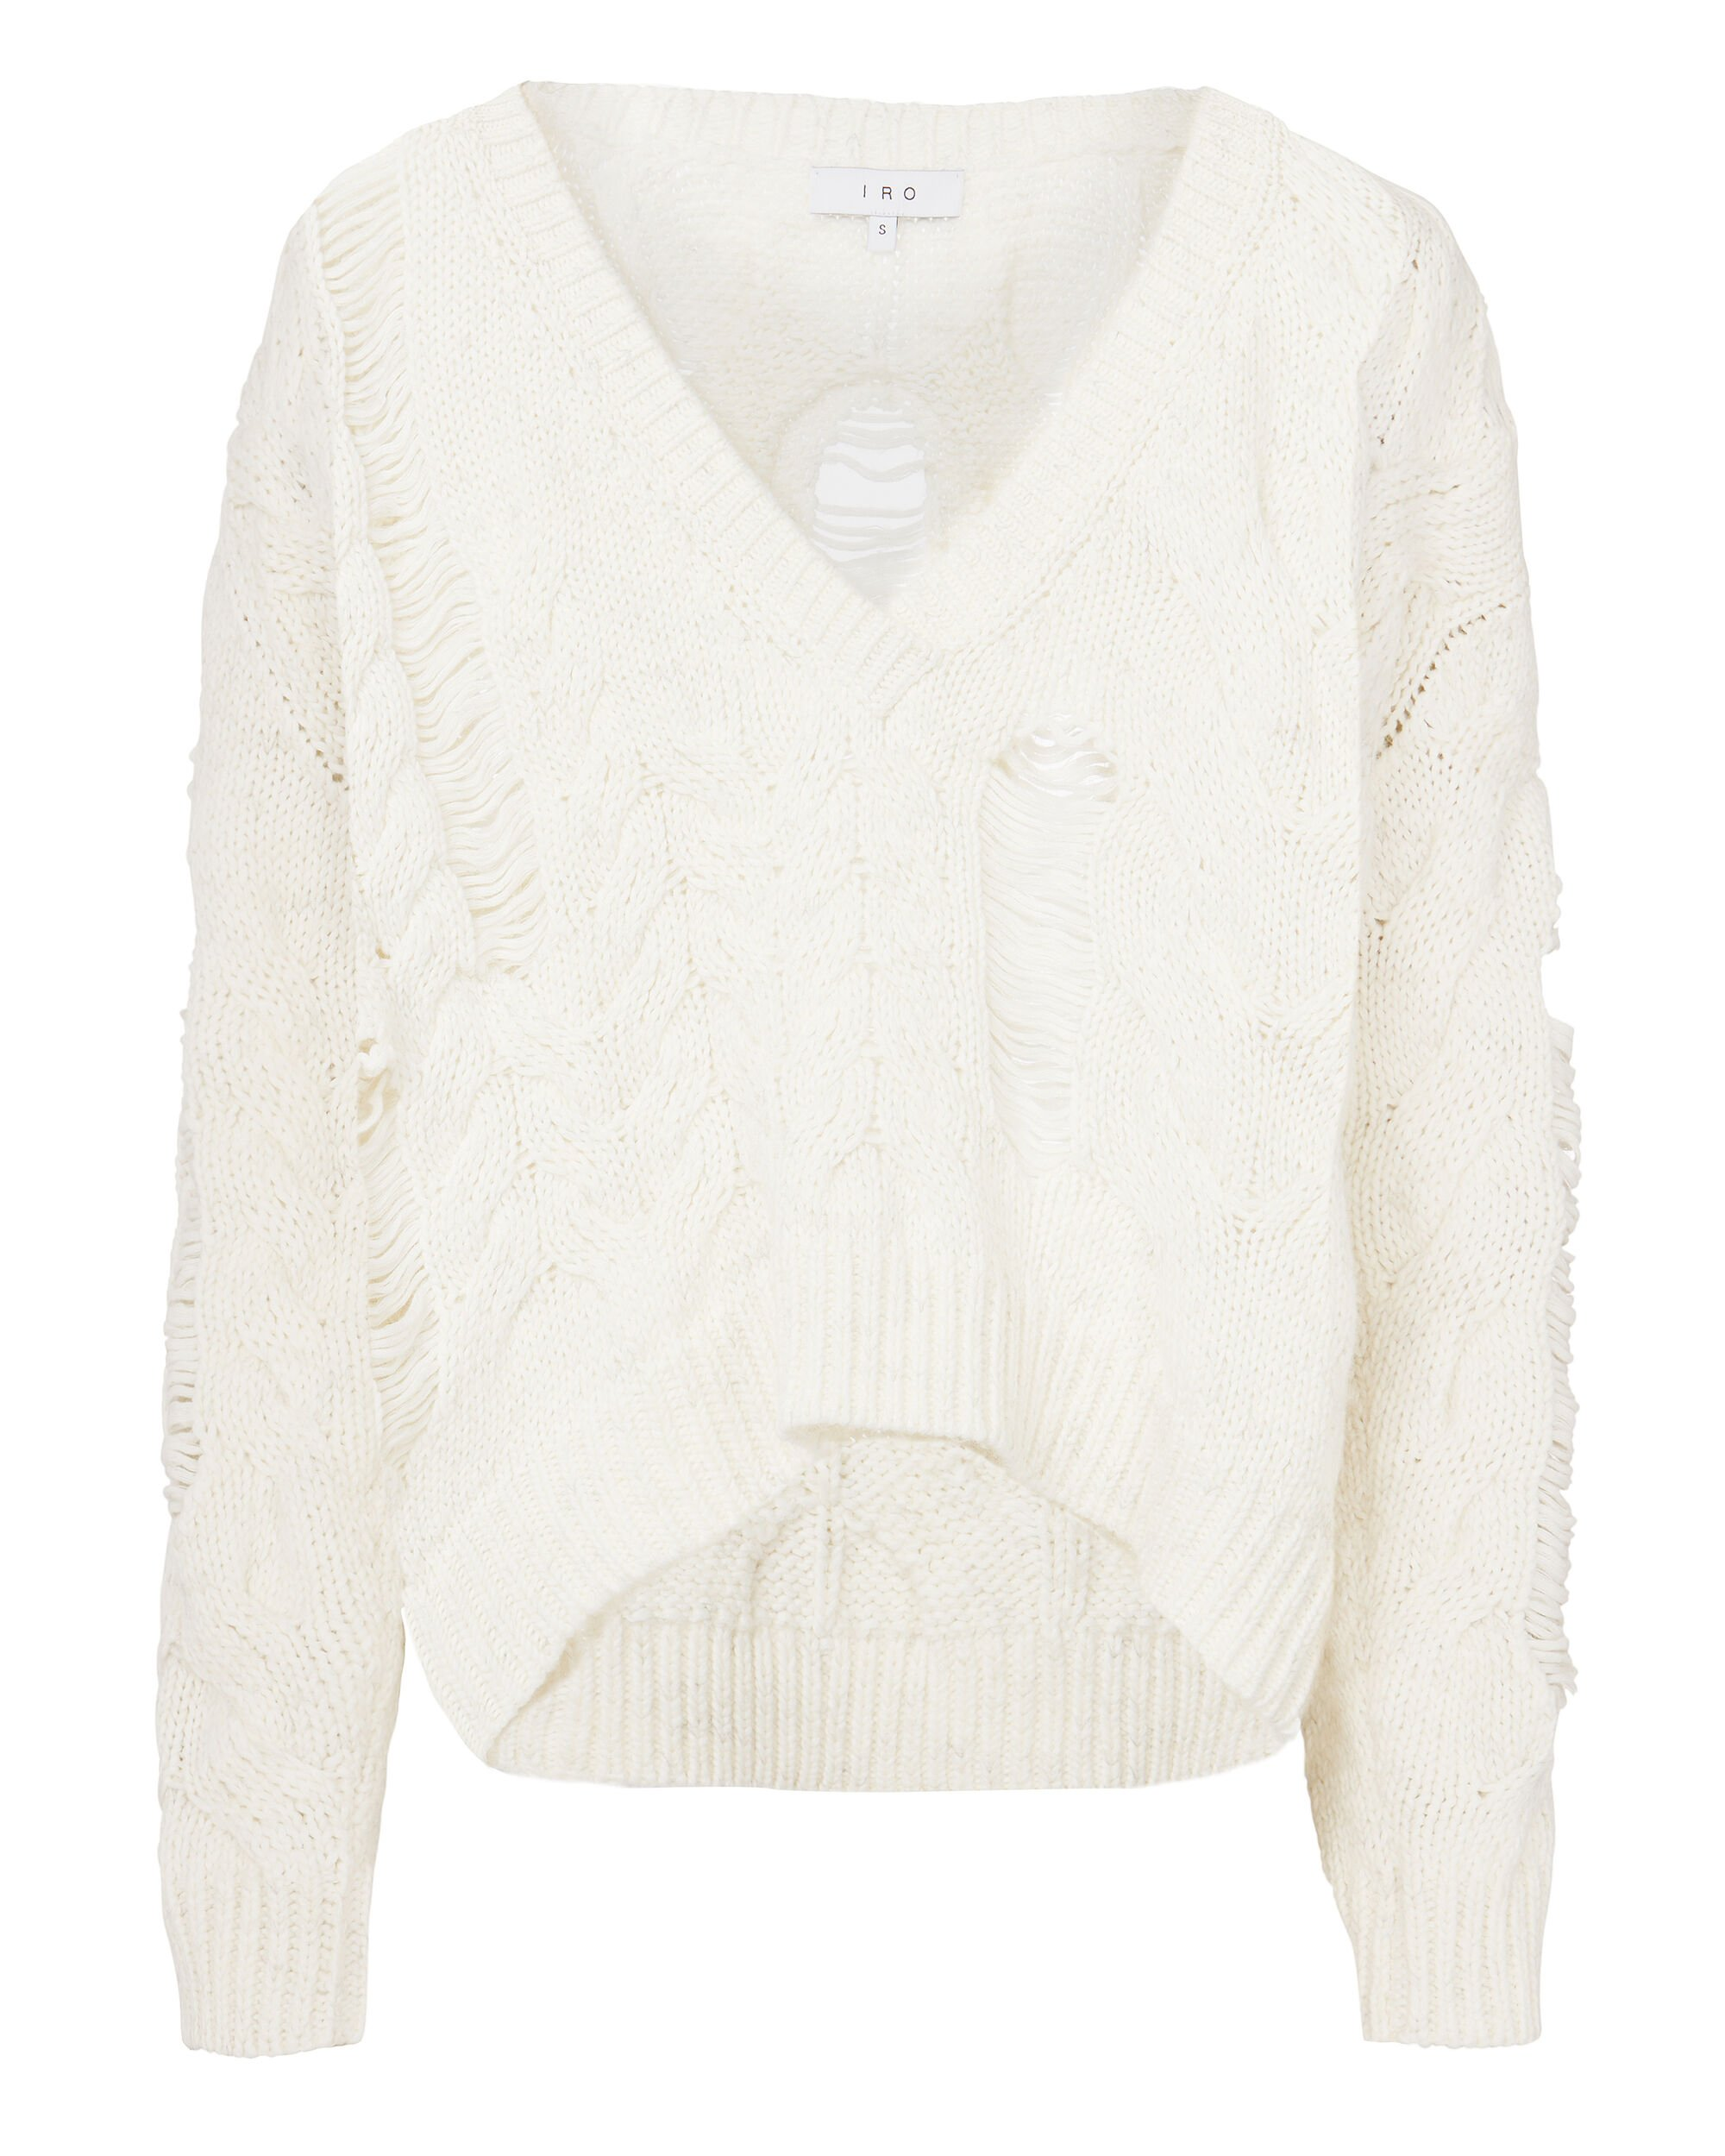 Shredded Cable Knit Sweater, IVORY, hi-res